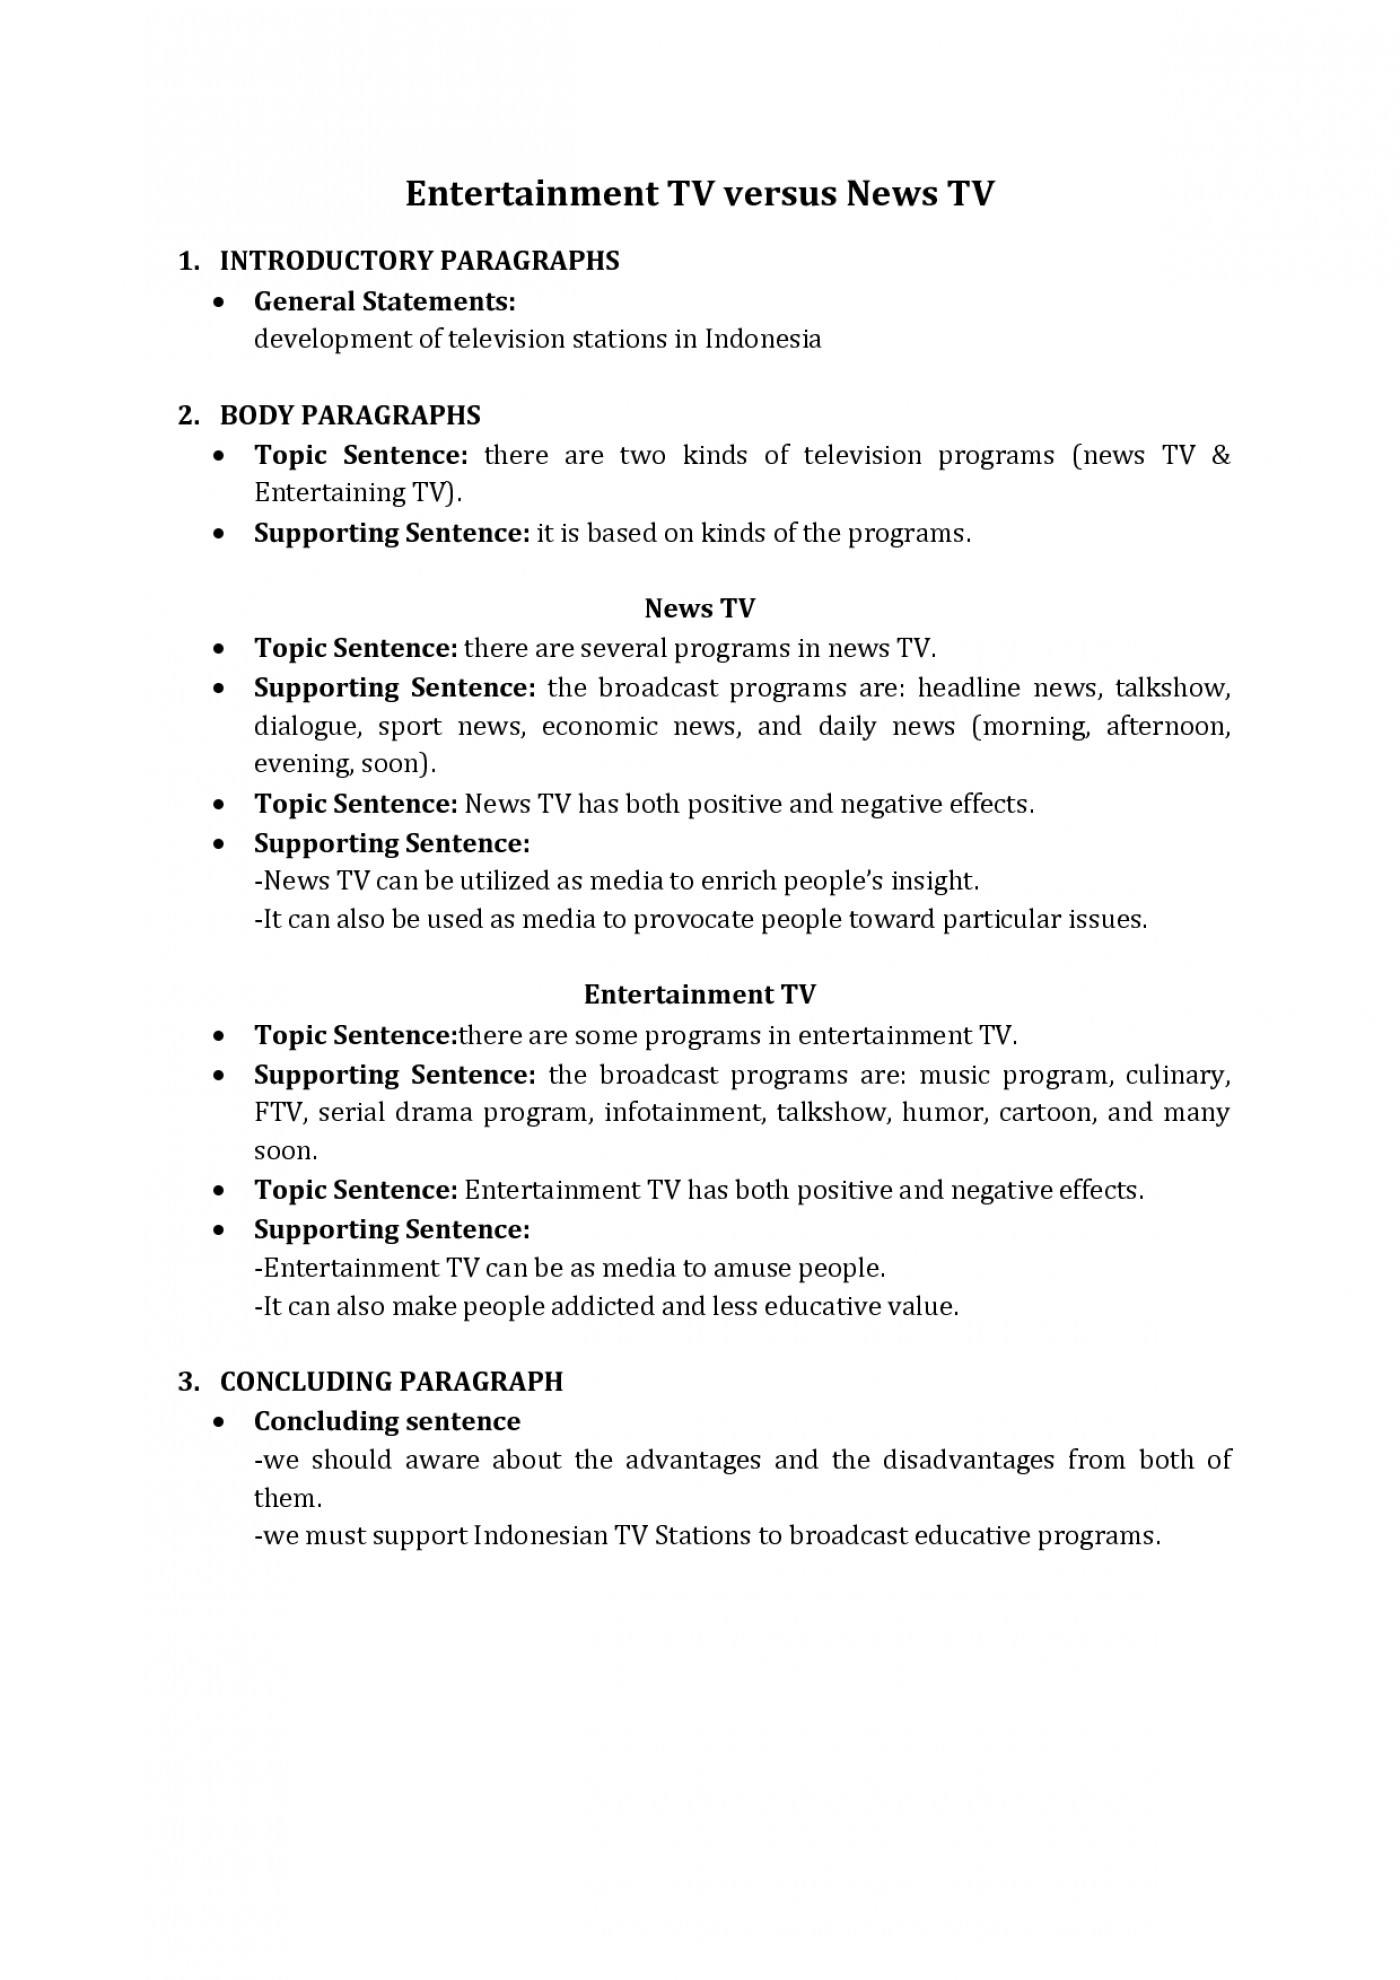 008 College Essay Outline Examples And Search On Pinterest Inmat Example How To Do An Astounding For Write A Formal Argumentative Create Persuasive Make Informative 1400